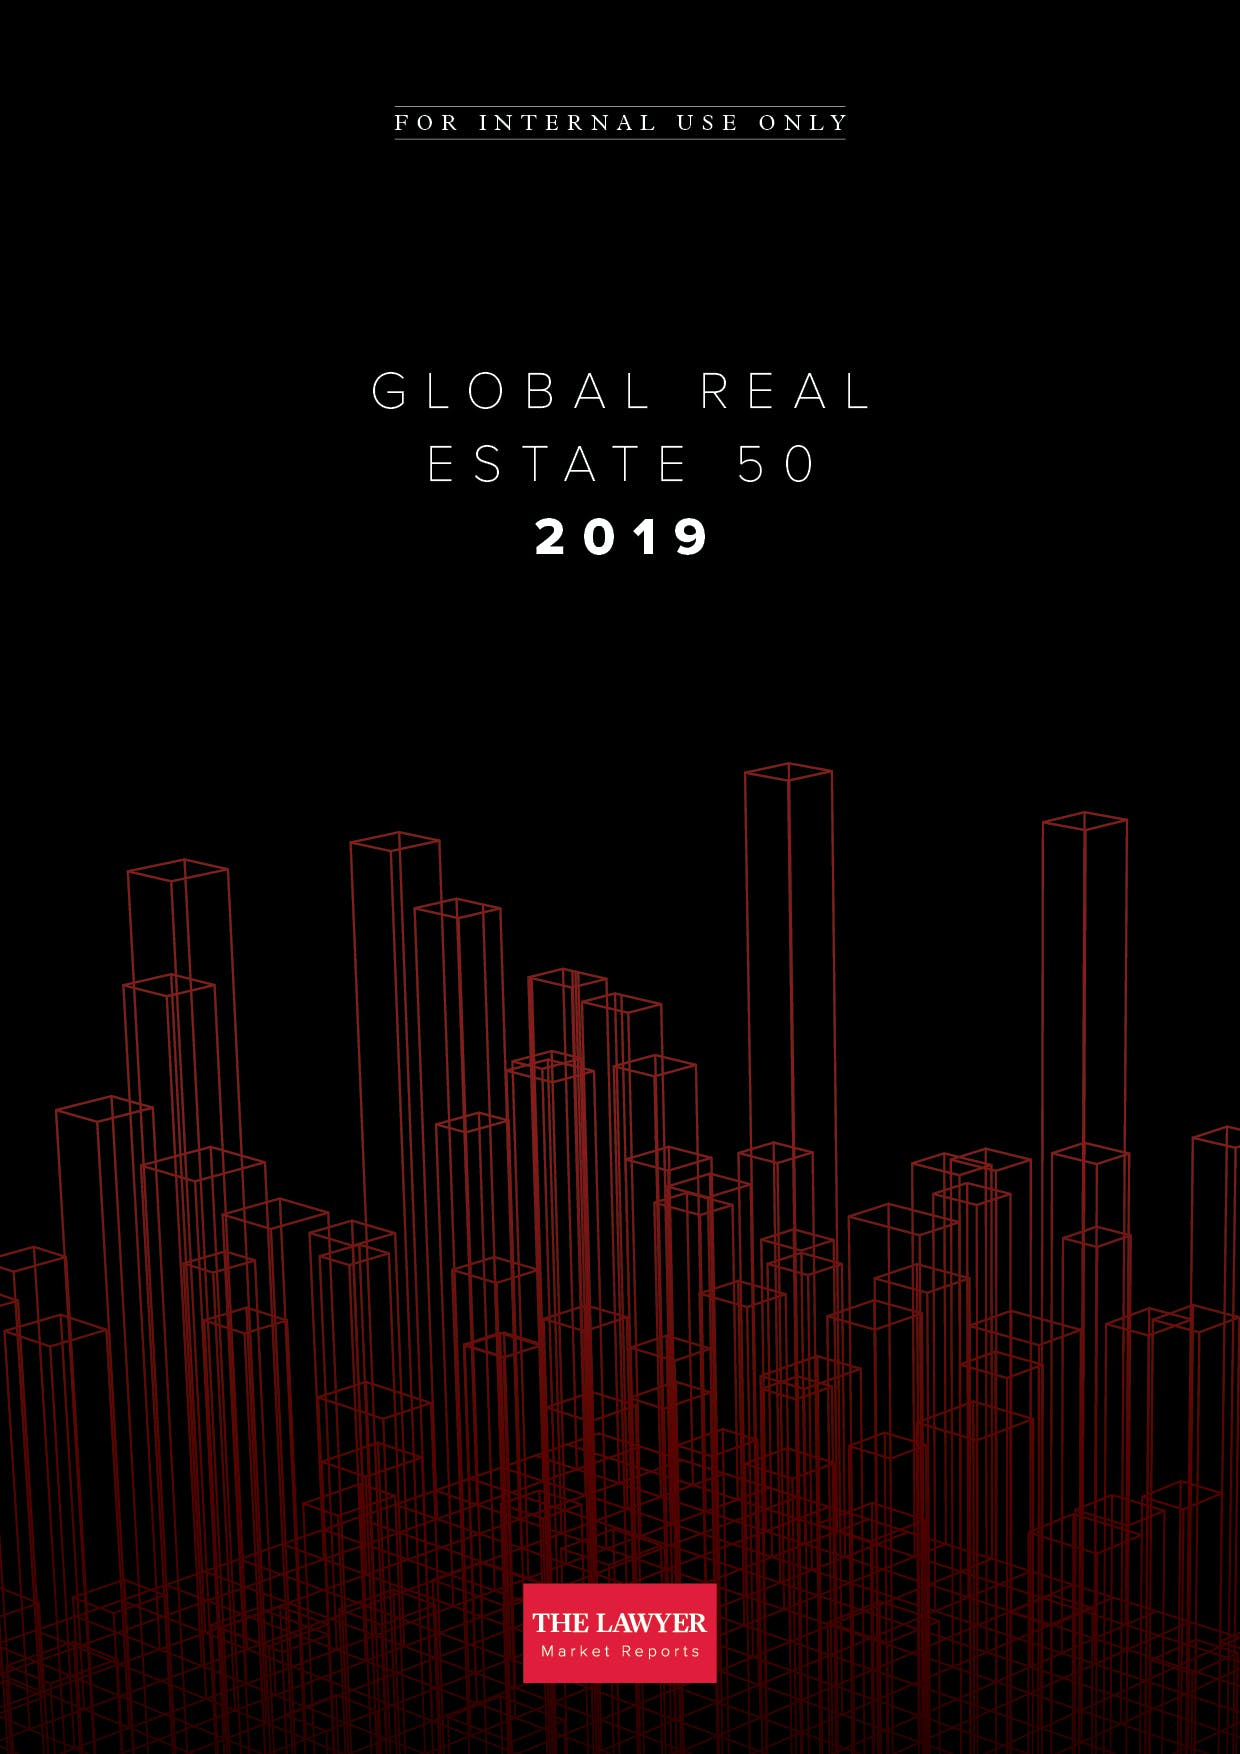 Global Real Estate 50 2019 report – The Lawyer | Legal